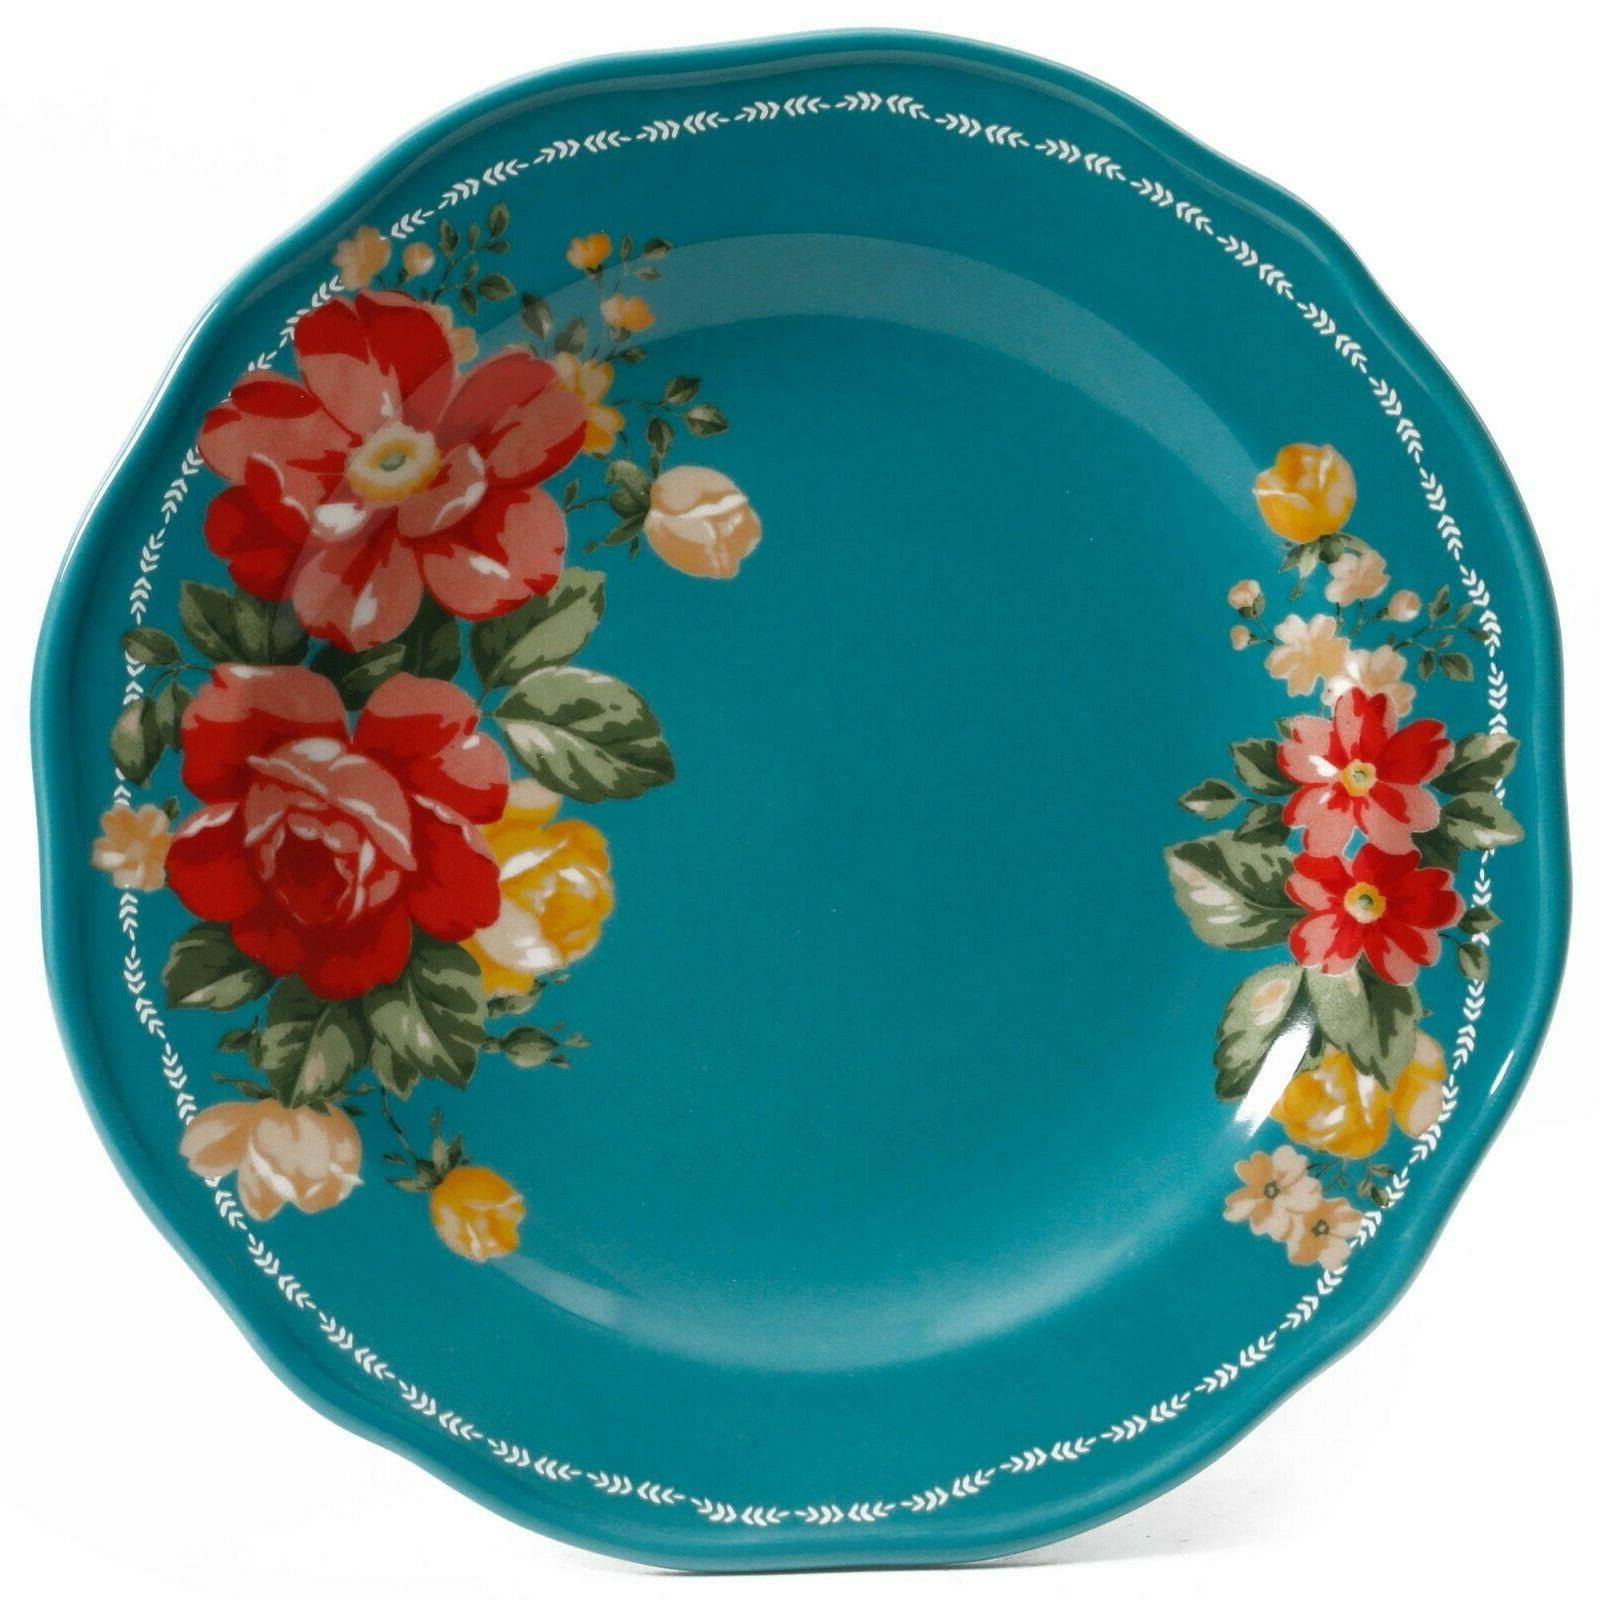 The Floral 12-Piece Teal